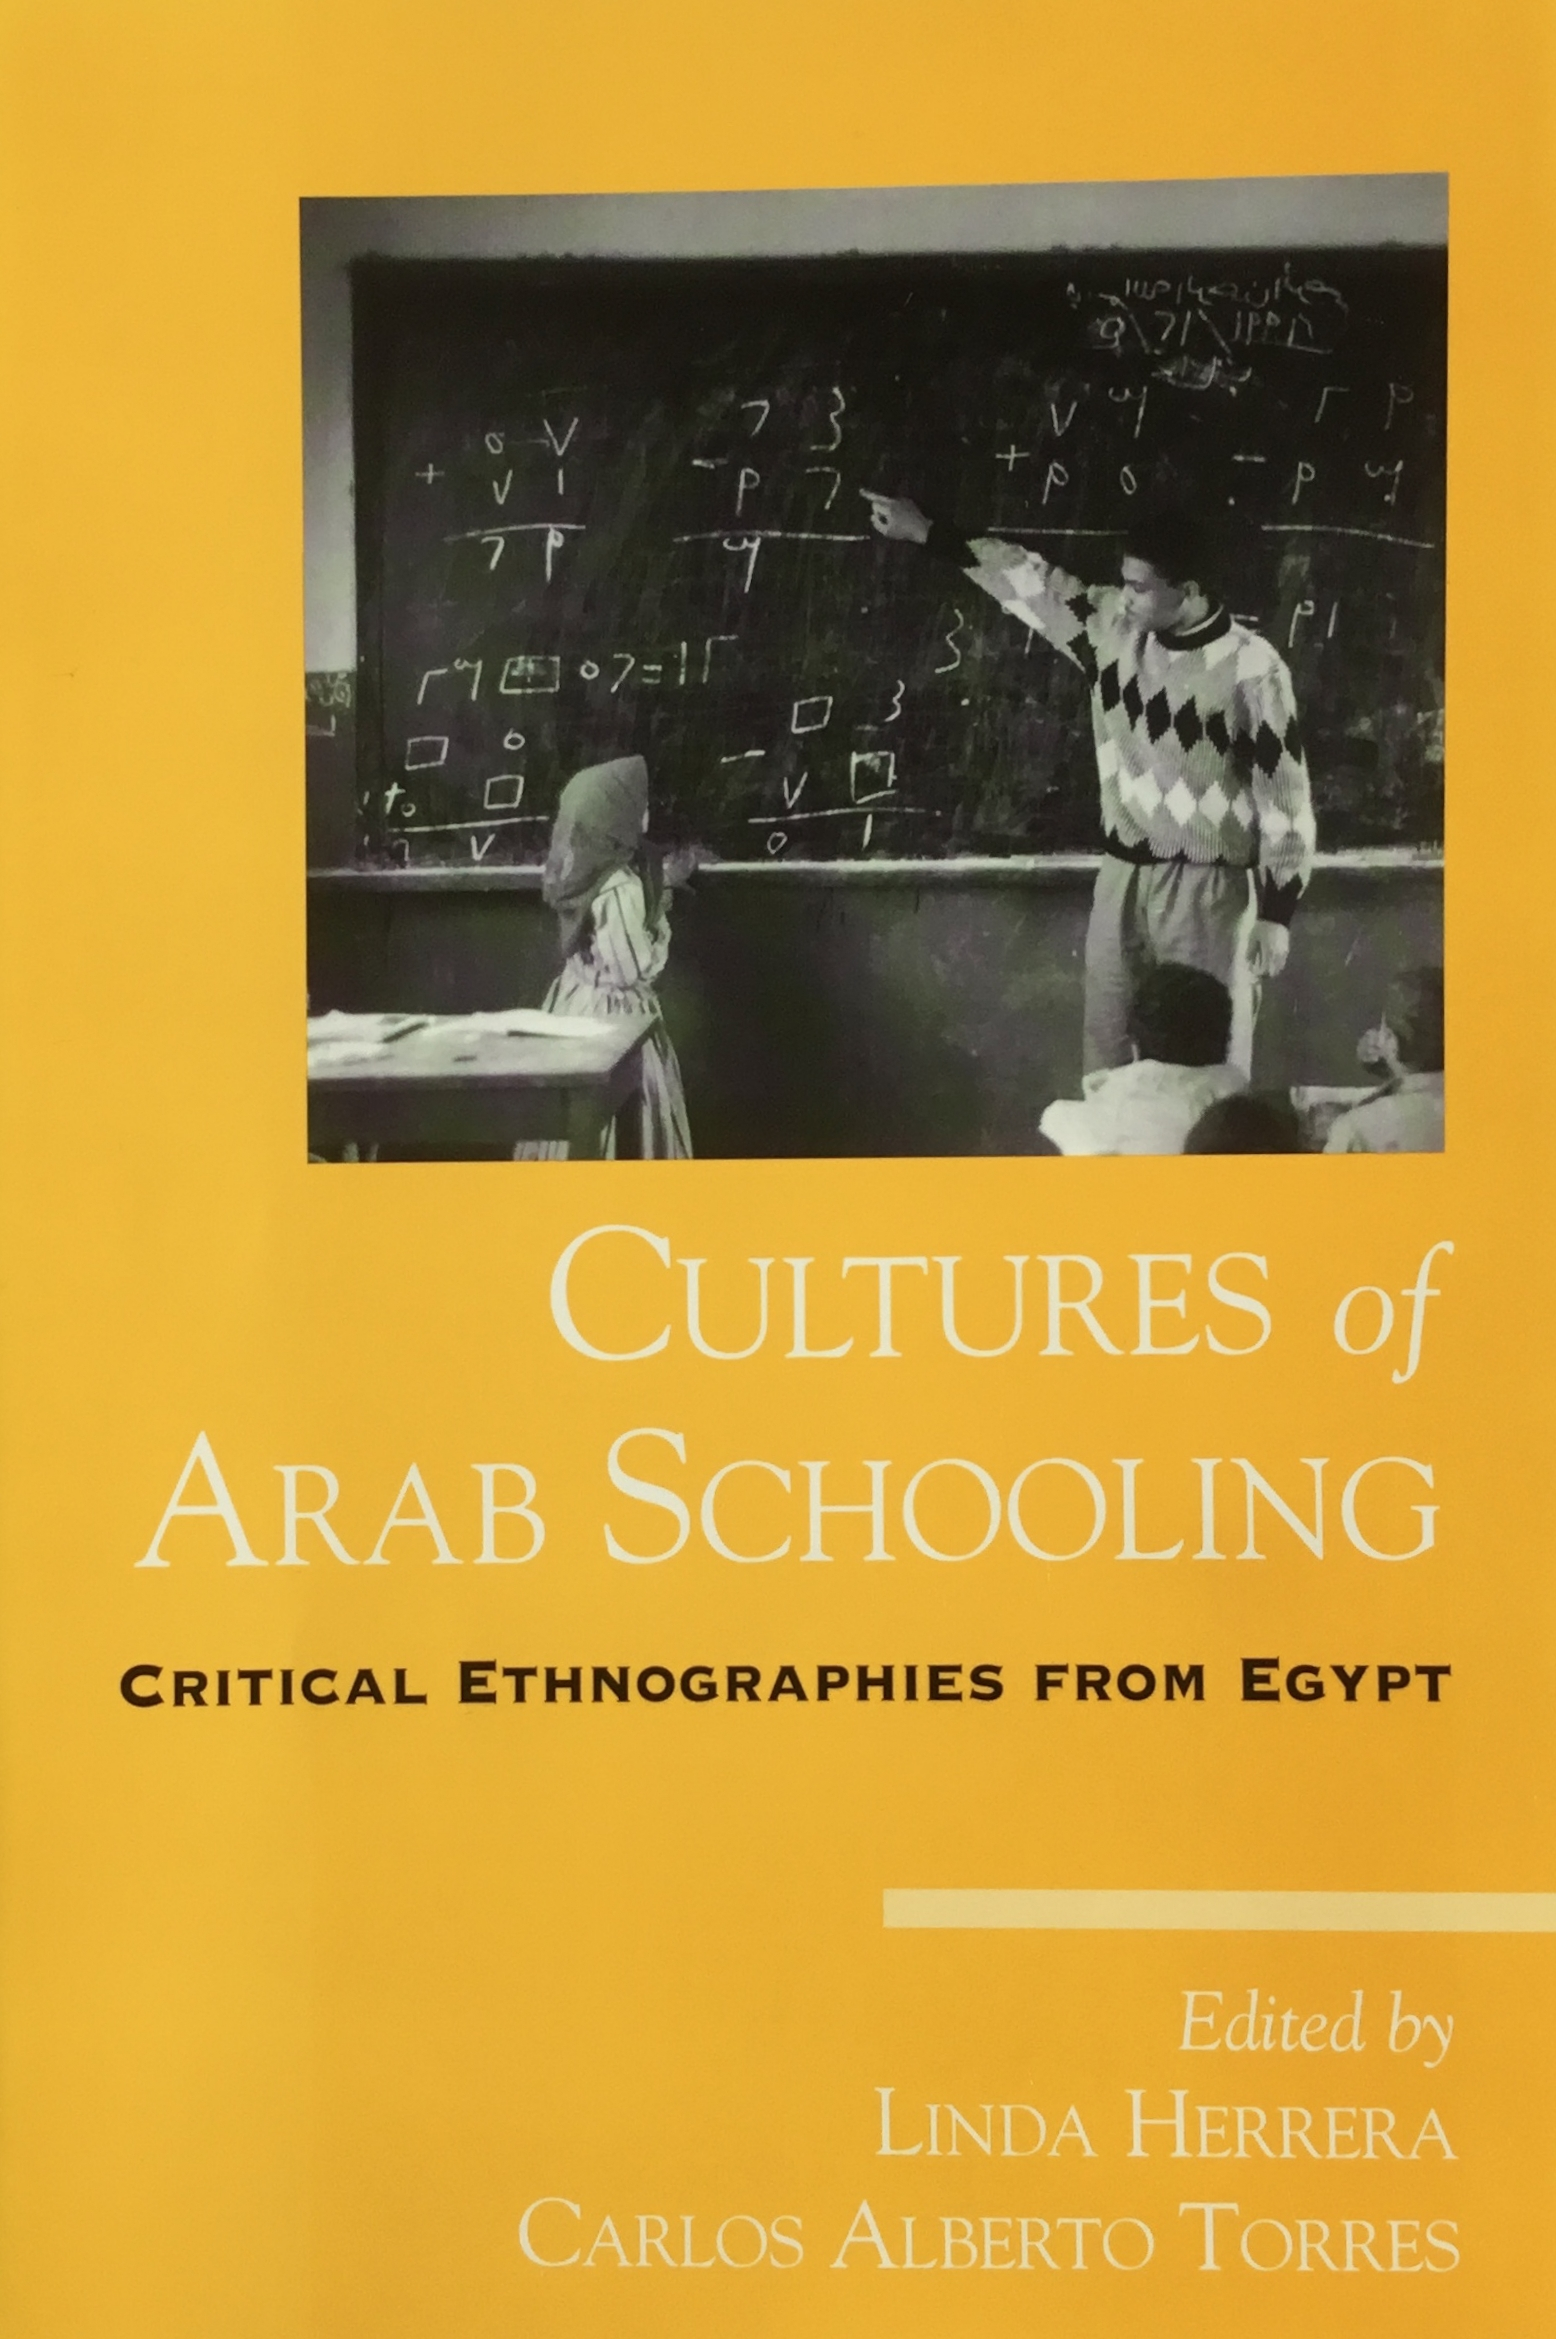 Herrera, Linda & Torres, C..A. (2006).  Introduction: Possibilities for critical education in the Arab world.  In L. Herrera & C. A. Torres (Eds.),  Cultures of Arab schooling: Critical ethnographies from Egypt  (pp. 1-24). New York: State University of New York Press.